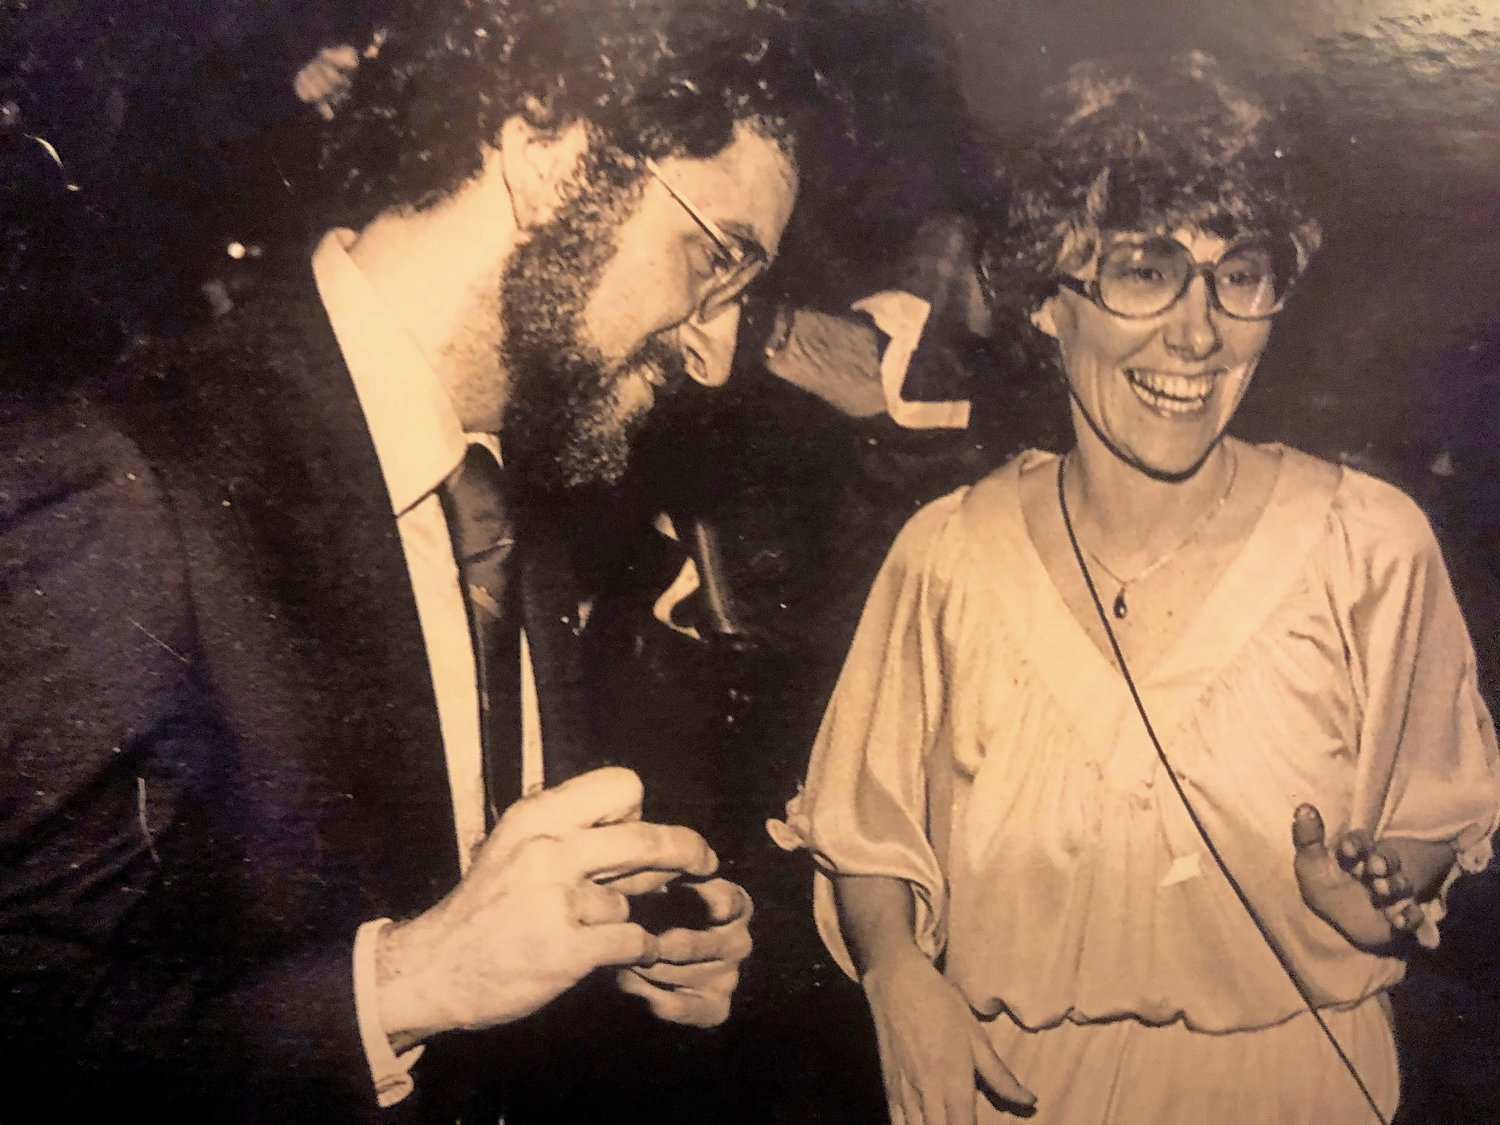 Dan and Ann at a fundraiser at Studio 54 in 1975.